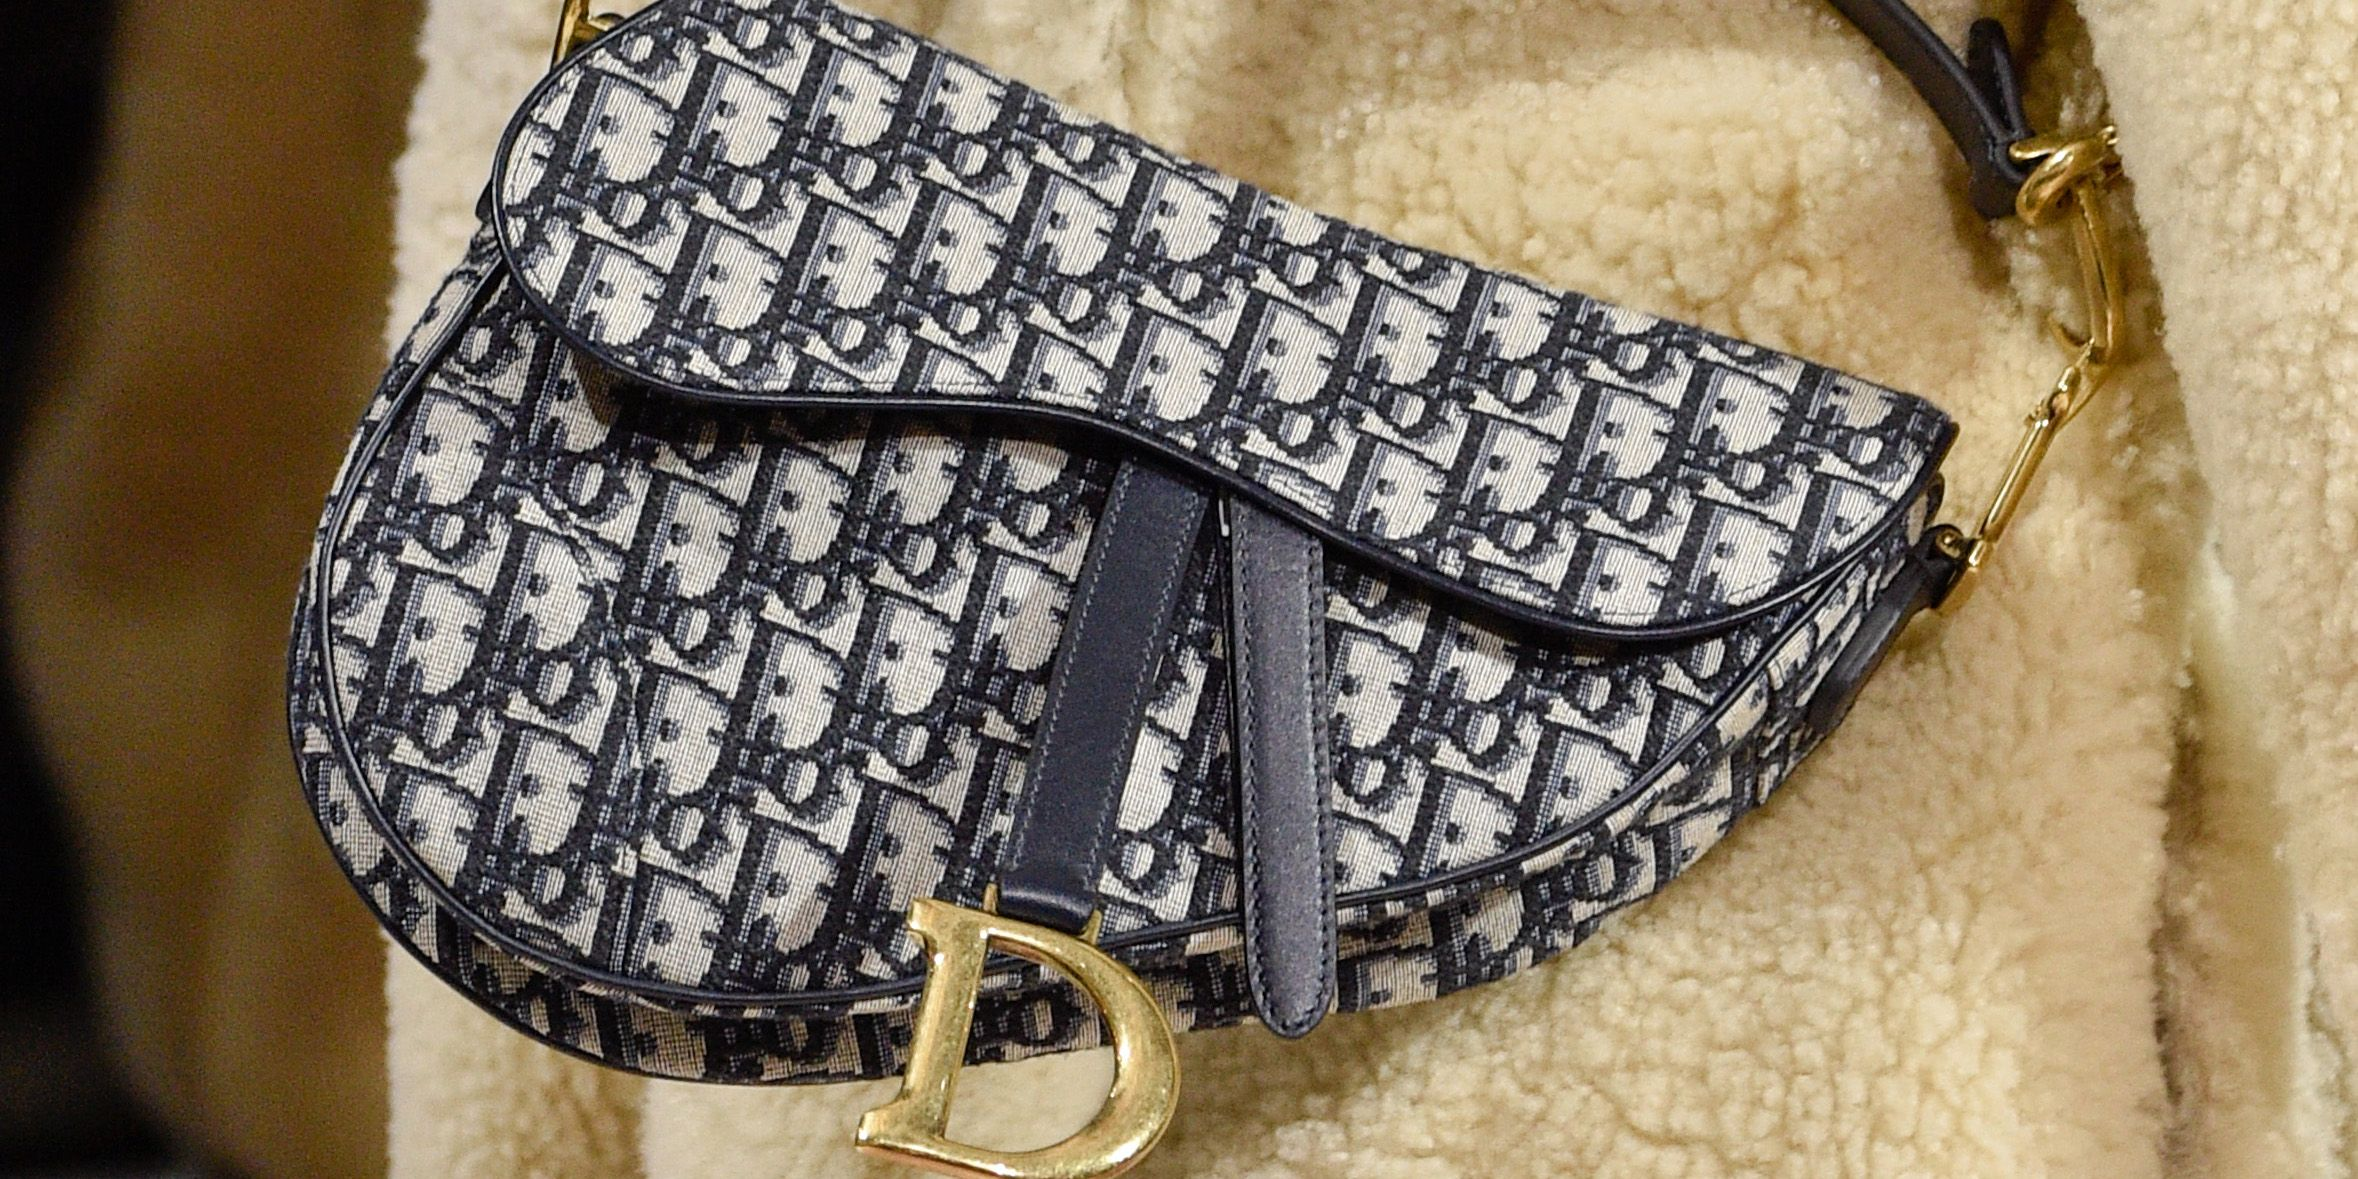 d05b347f21e9 Dior Releases New Collection of Saddle Bags - Dior Saddle Bag Release